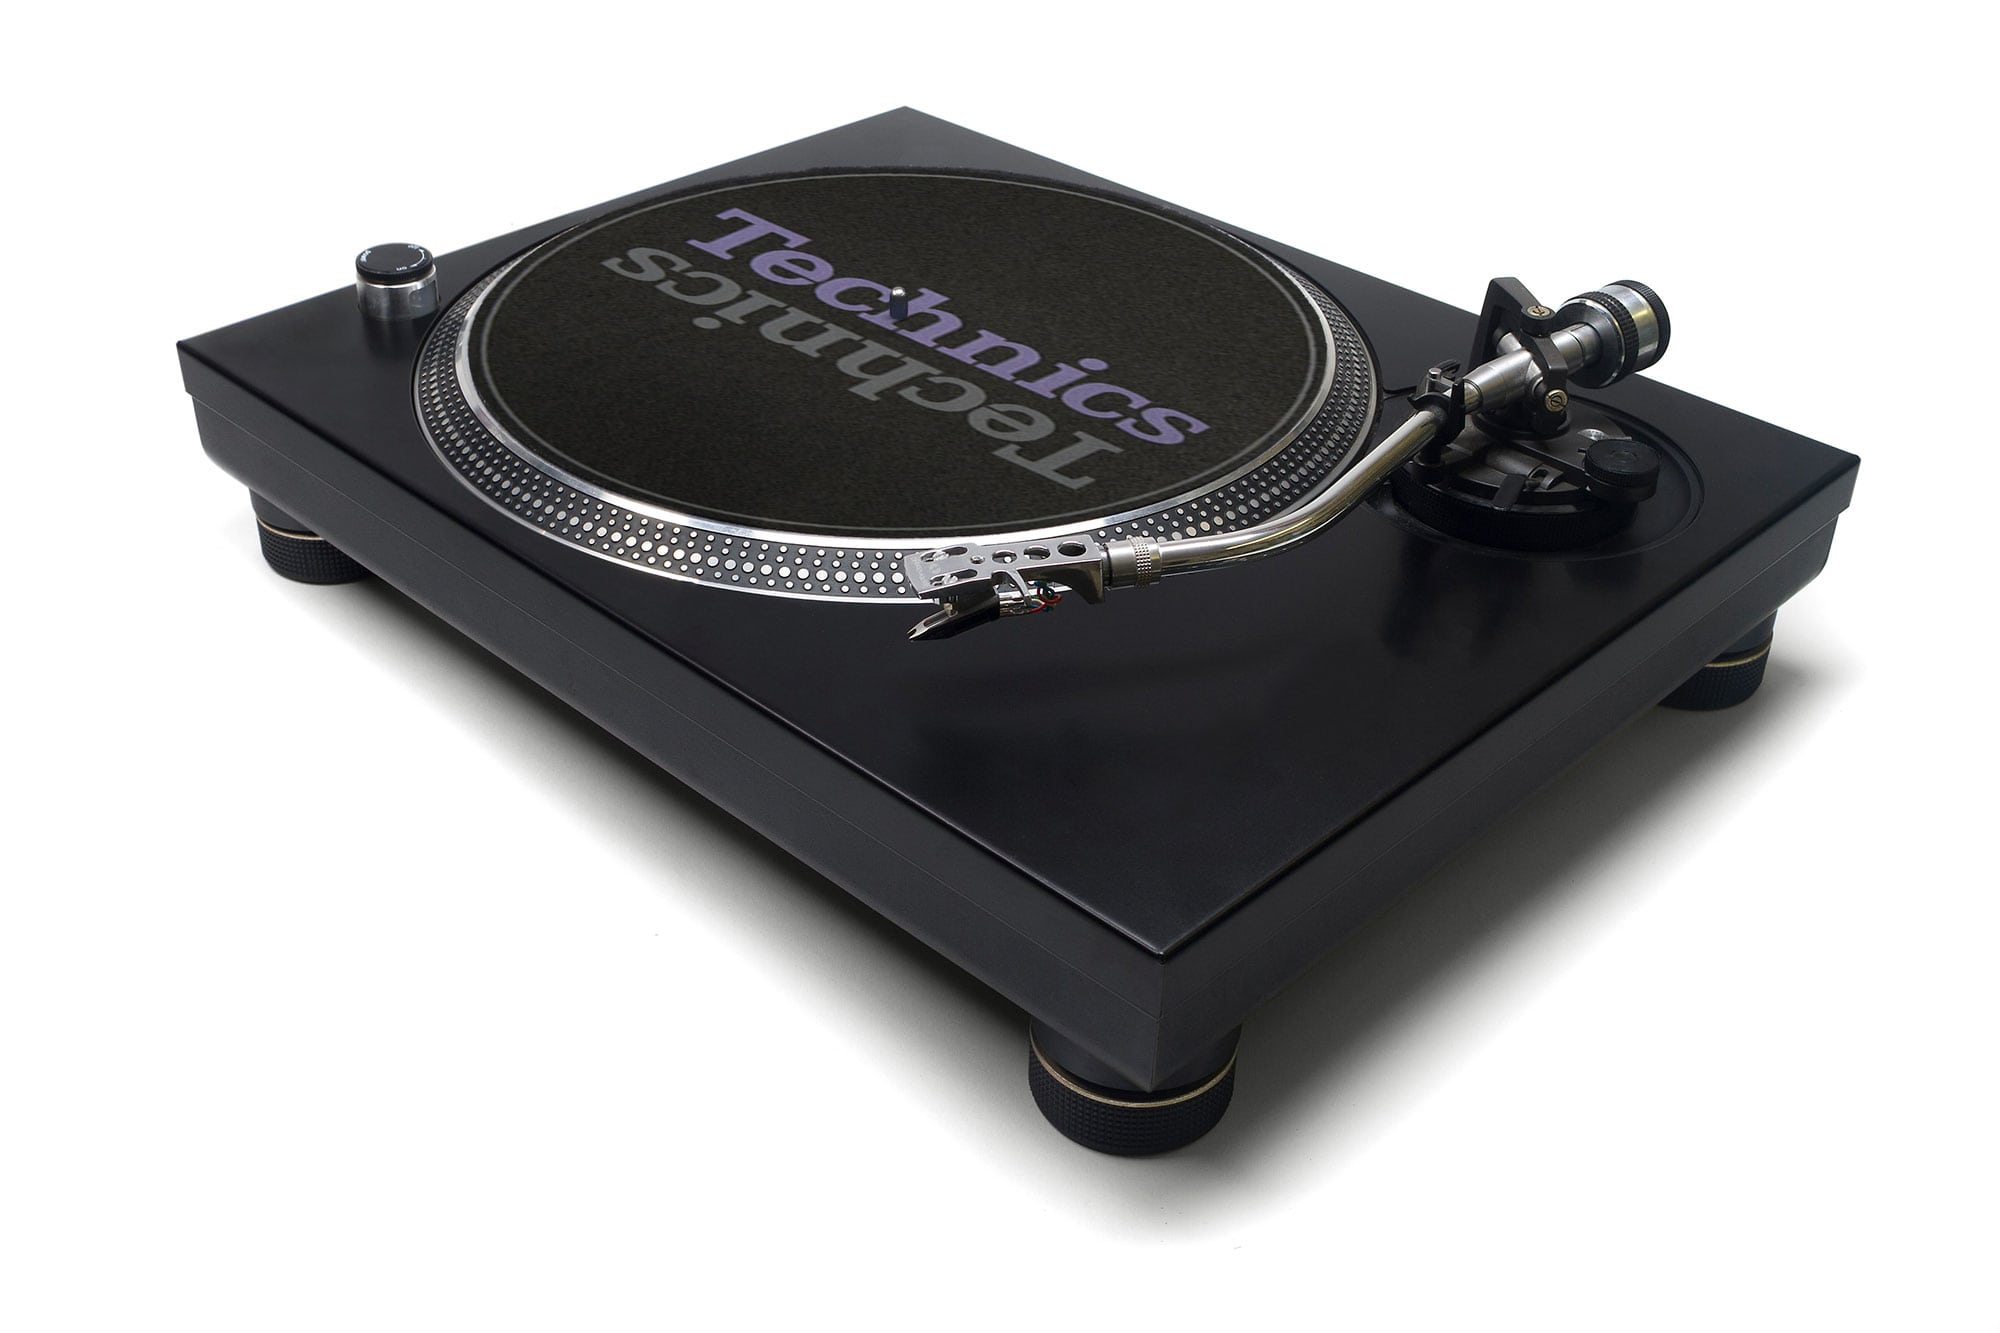 OPINION: The dumbing down of DJ turntables has to stop 10